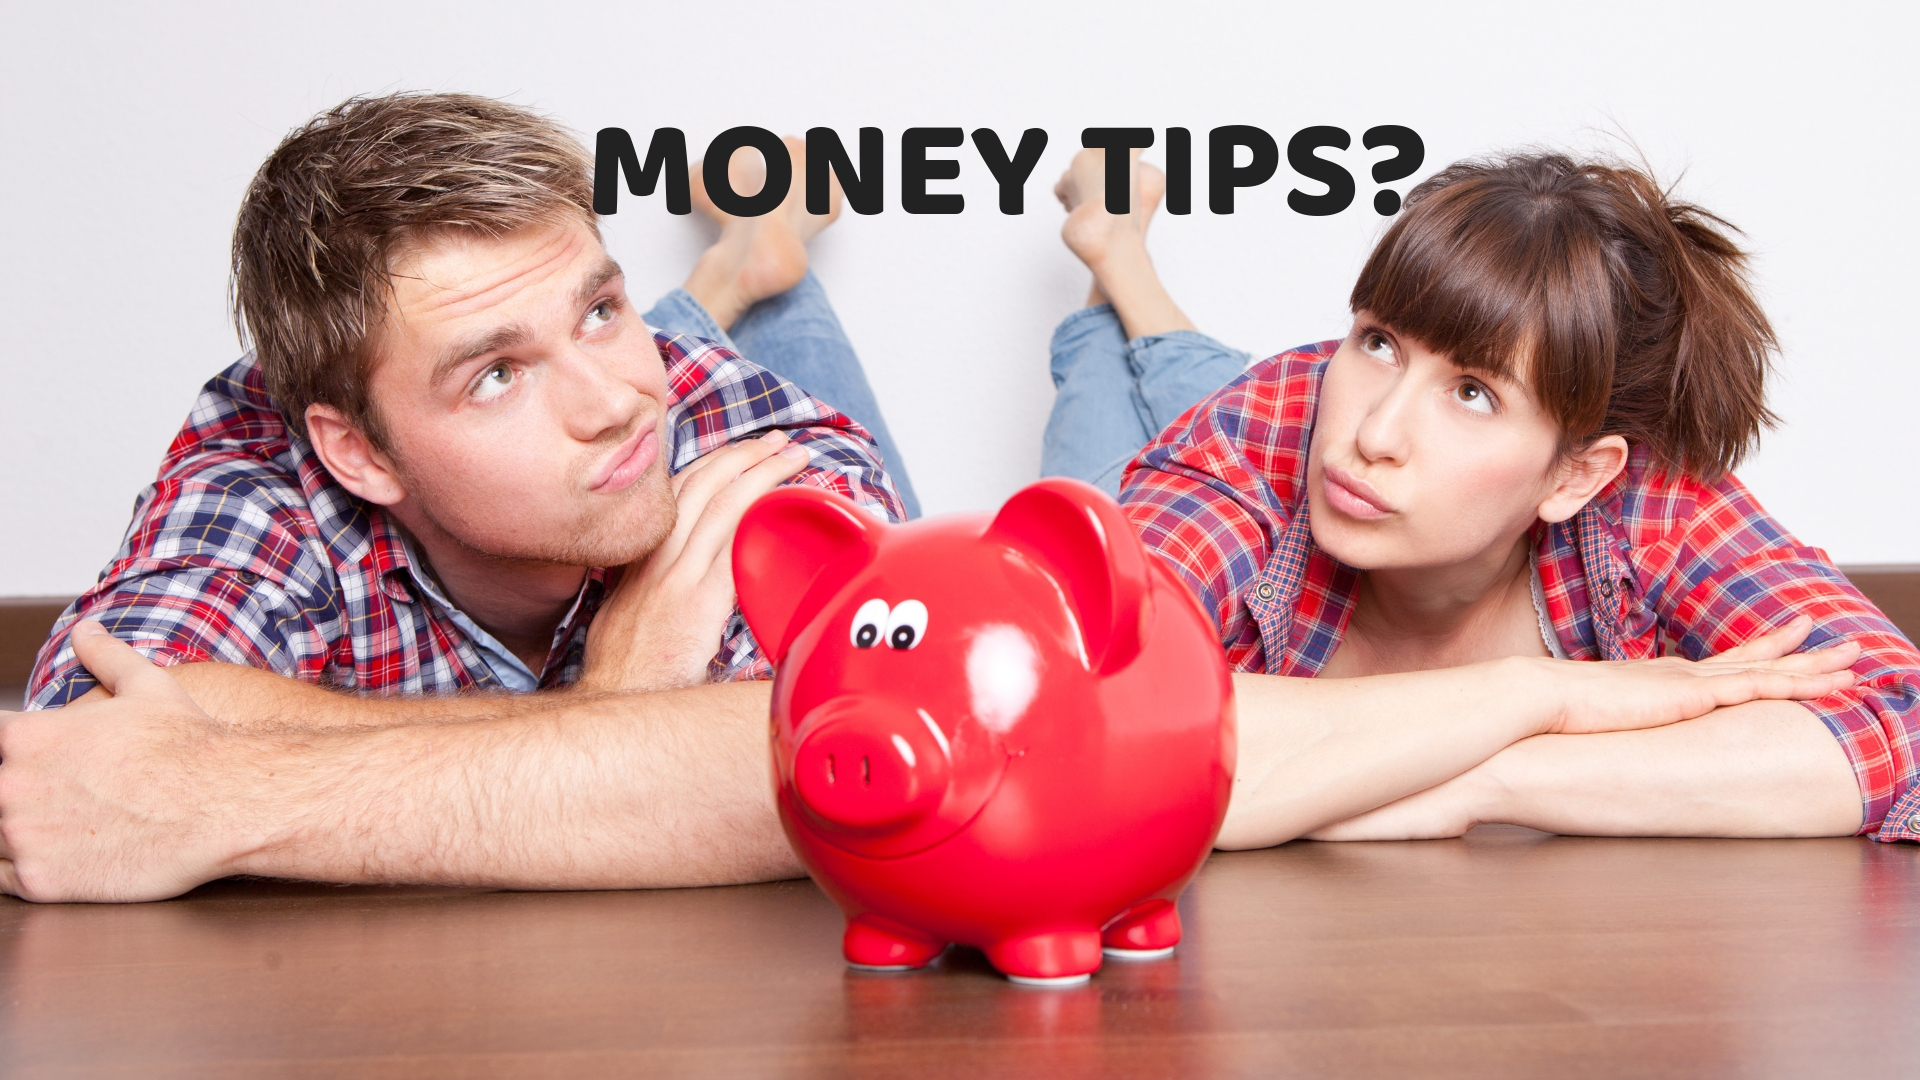 MONEY TIPS - Adobe Stock - Canva